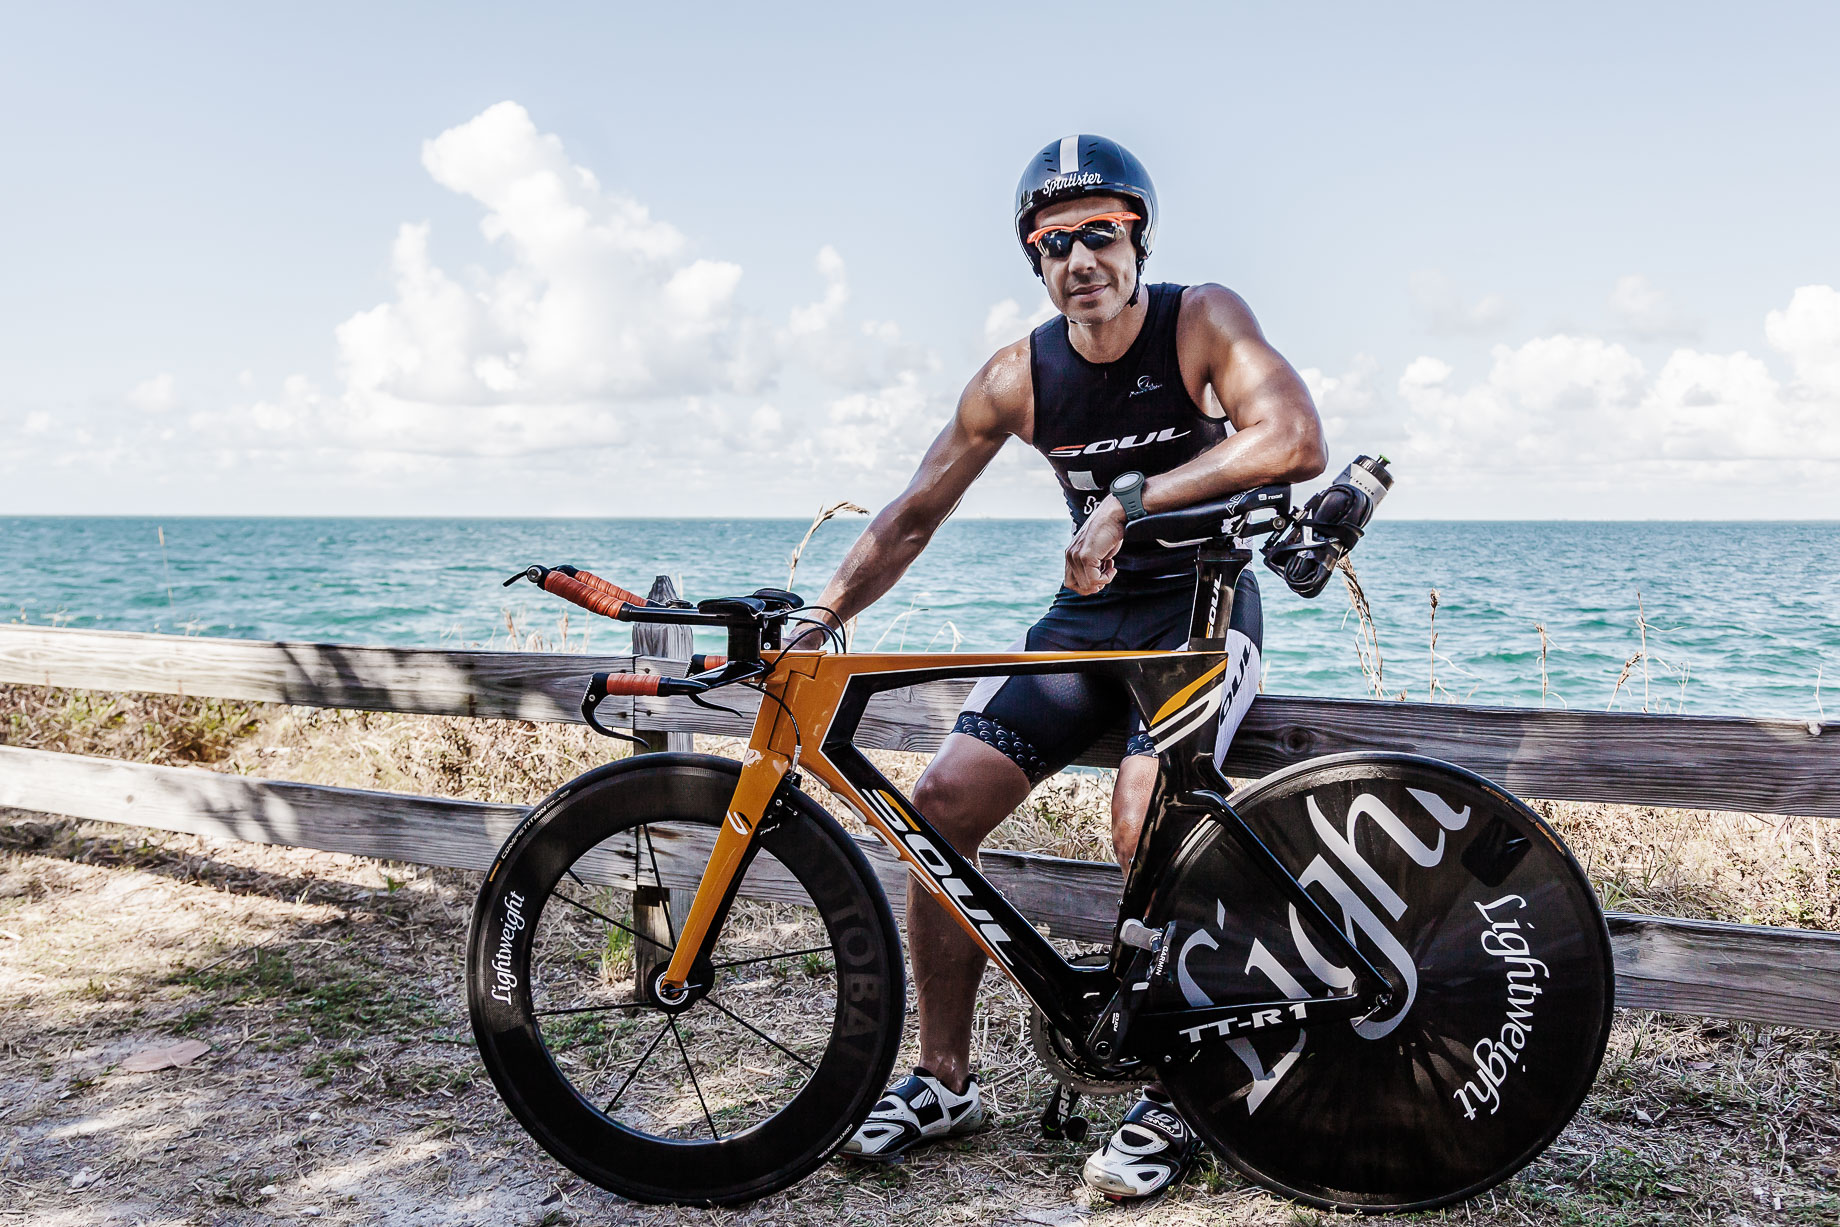 20150419_JPH_Triathlon_Joao_Paulo_Diniz_FRI_0044